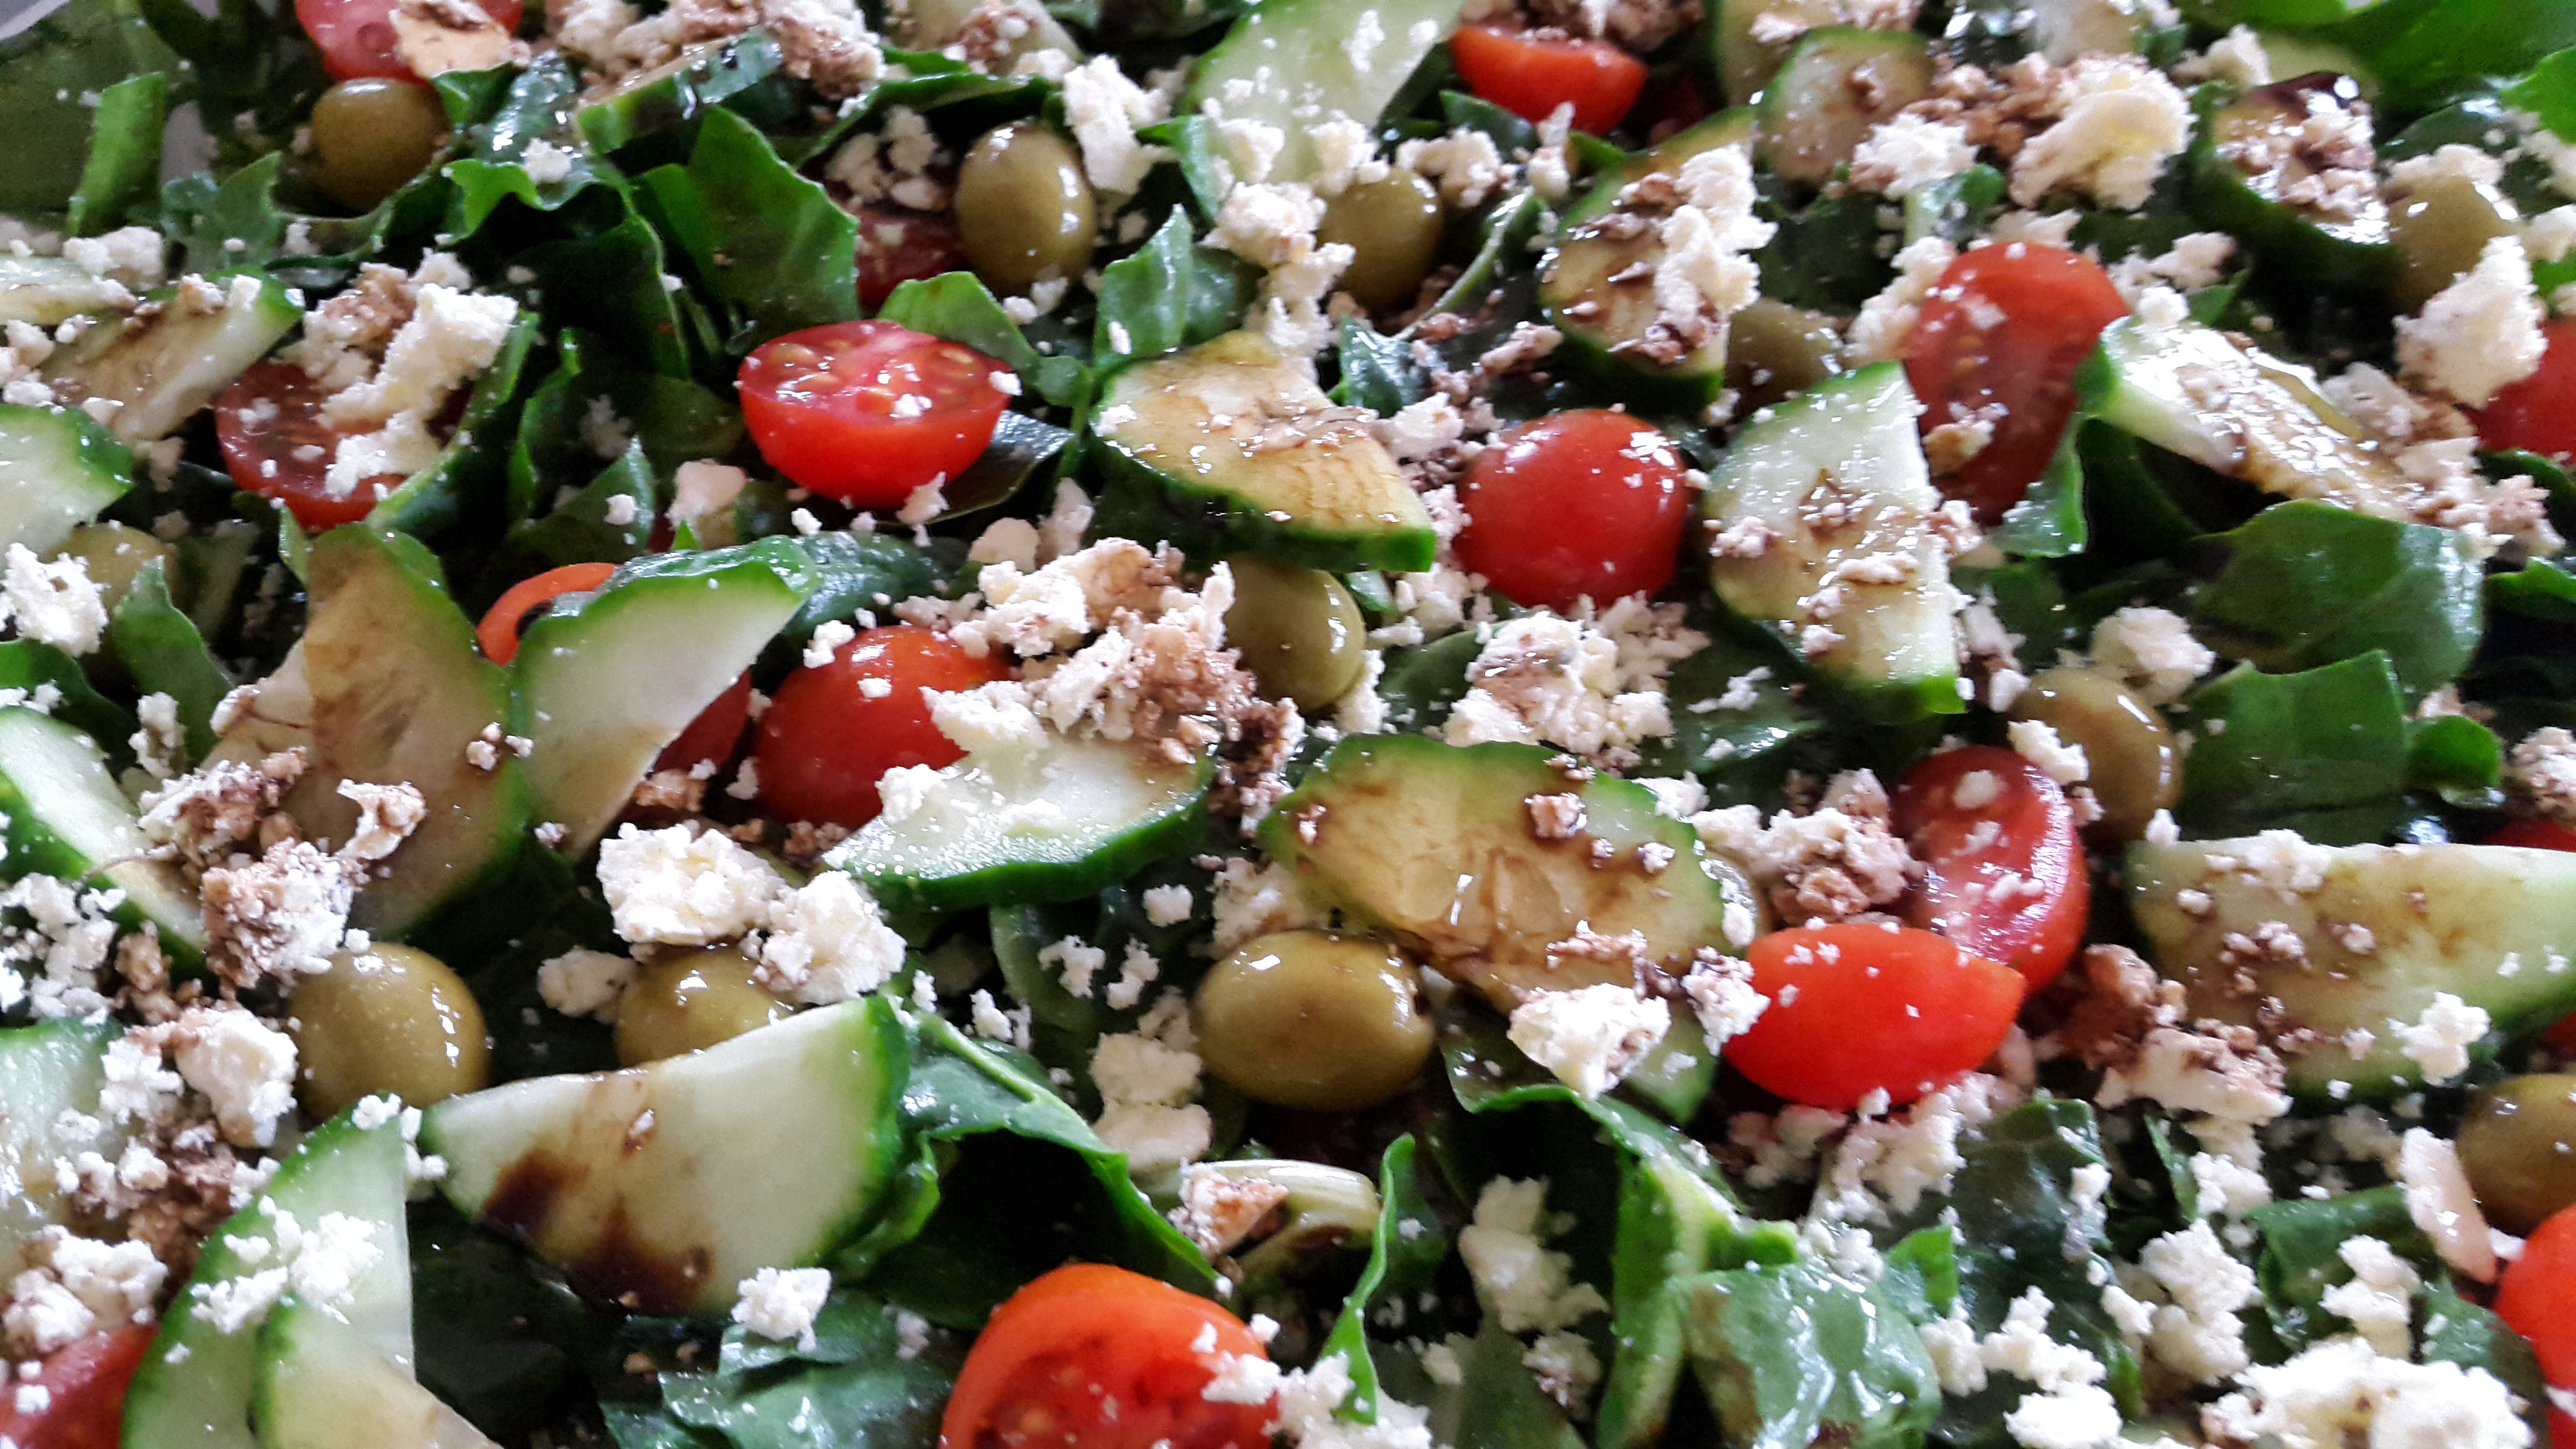 Spinach and Feta Salad with Balsamic Dressing